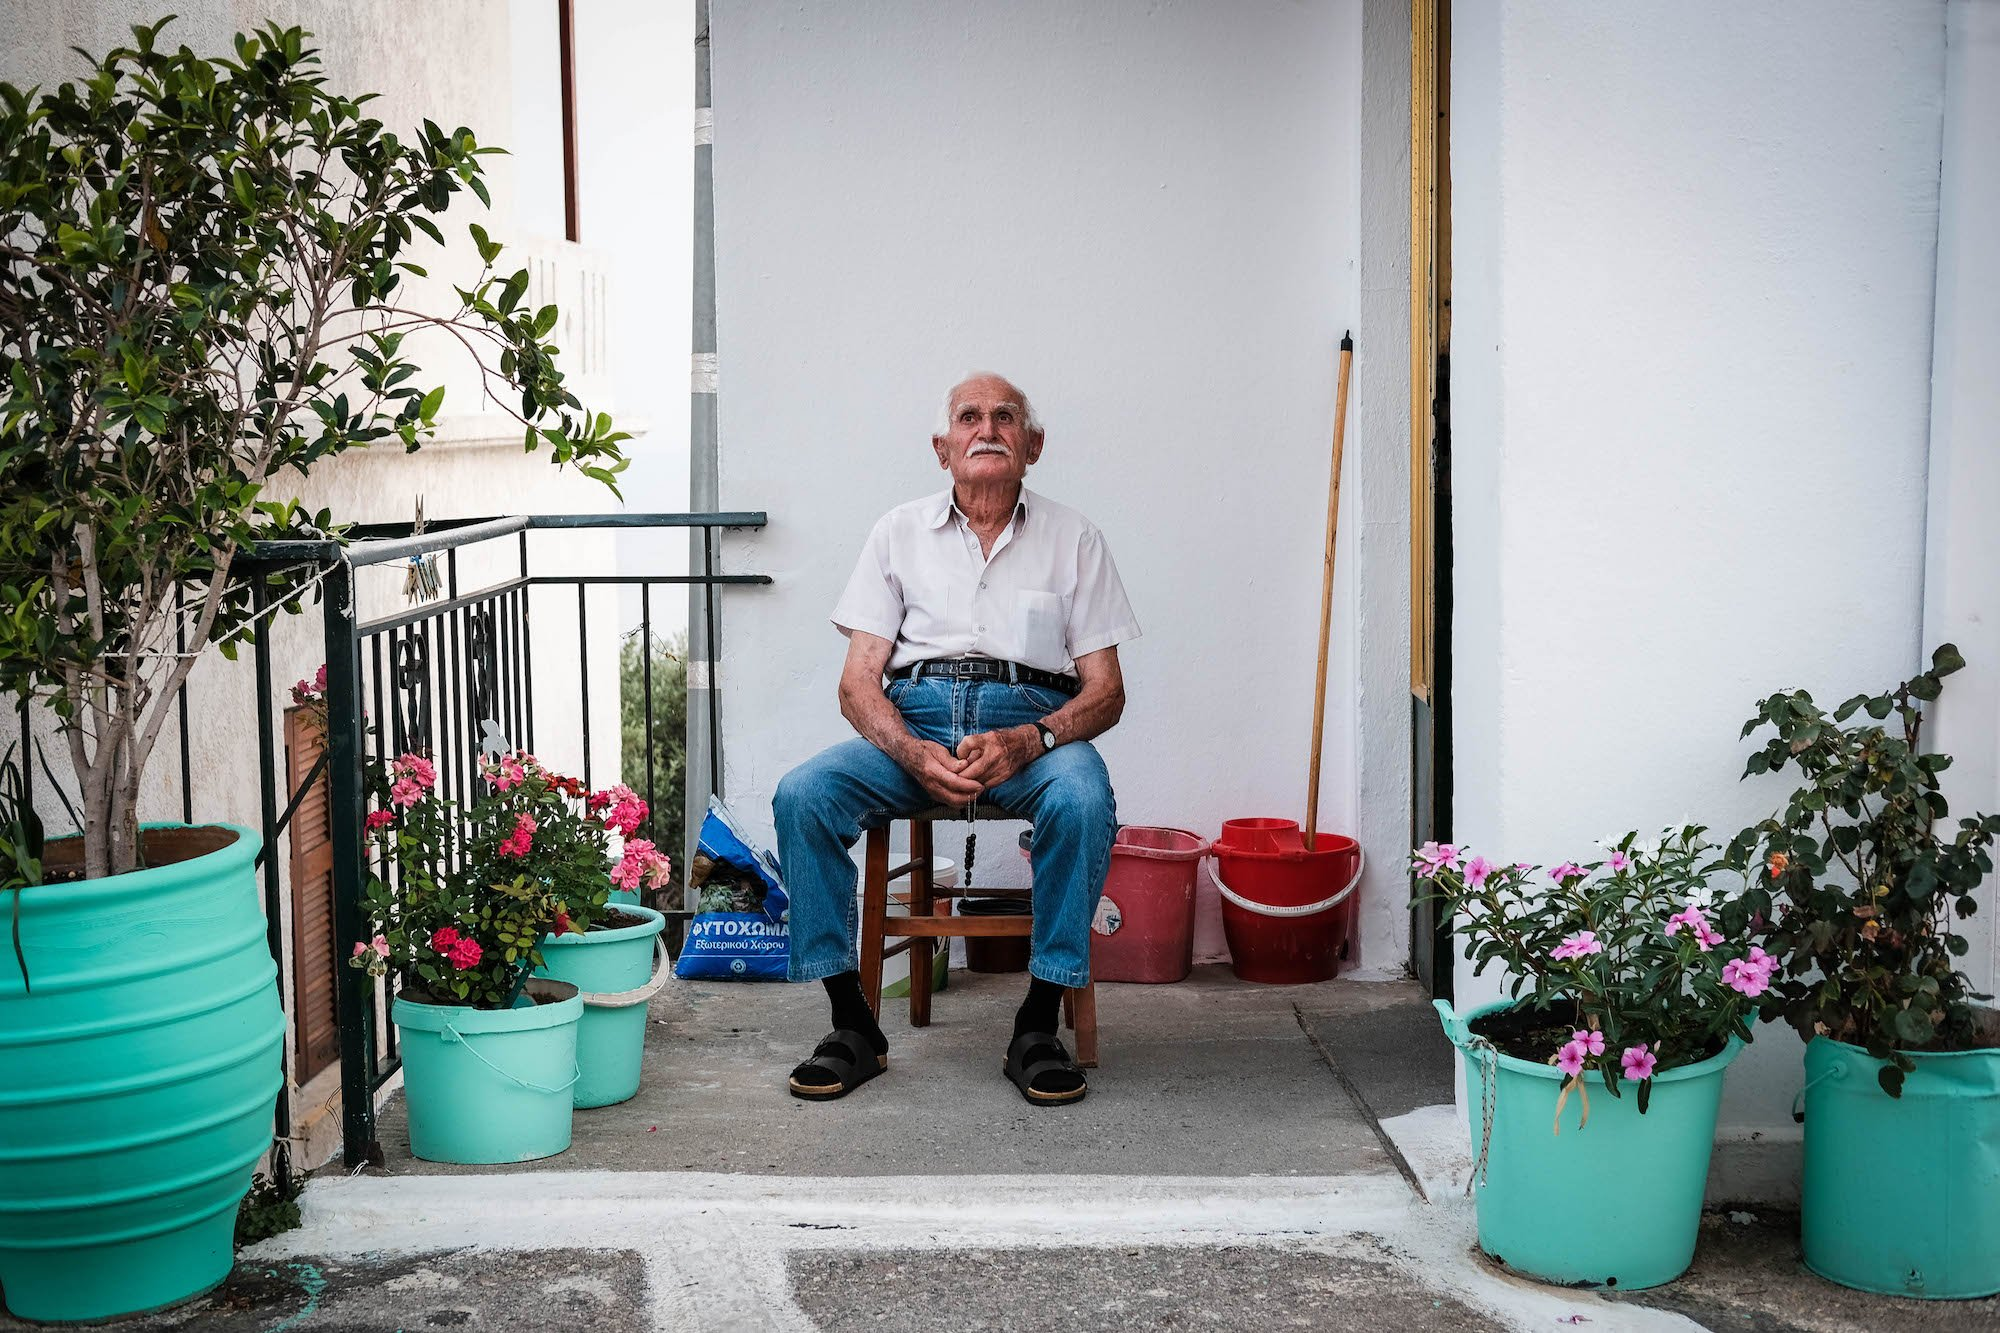 old-man-crete-travel-rest-fiona-madden-fujifilm